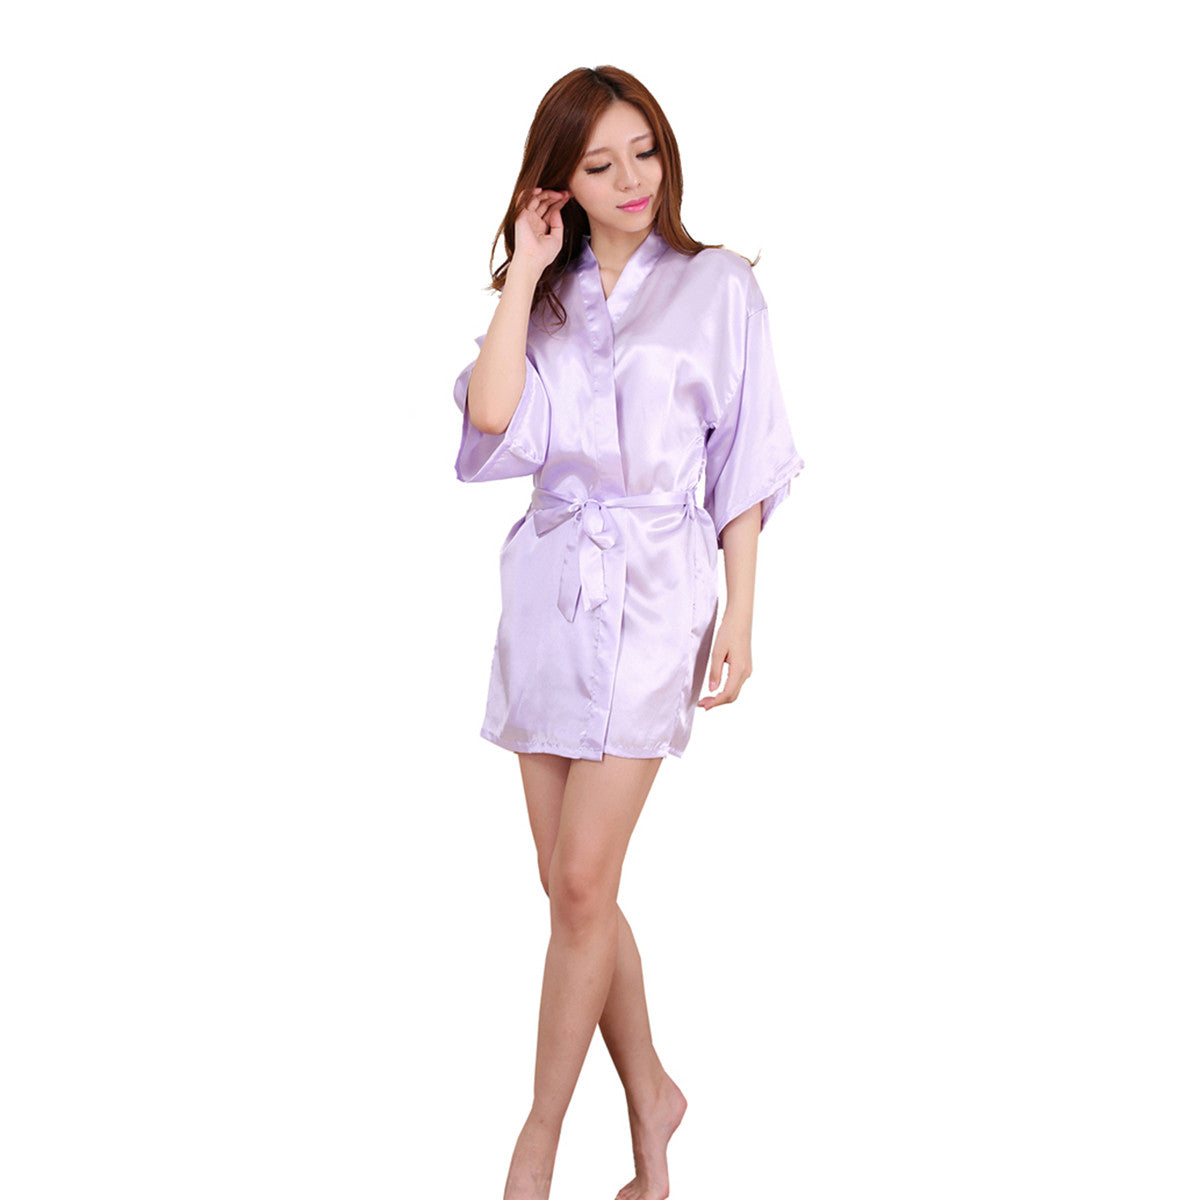 b7fcad870 Women's Kimono Robe Knee Length Bridal Lingerie Sleepwear Short Satin Robe  - Lucky Mouse Chinese Gifts ...